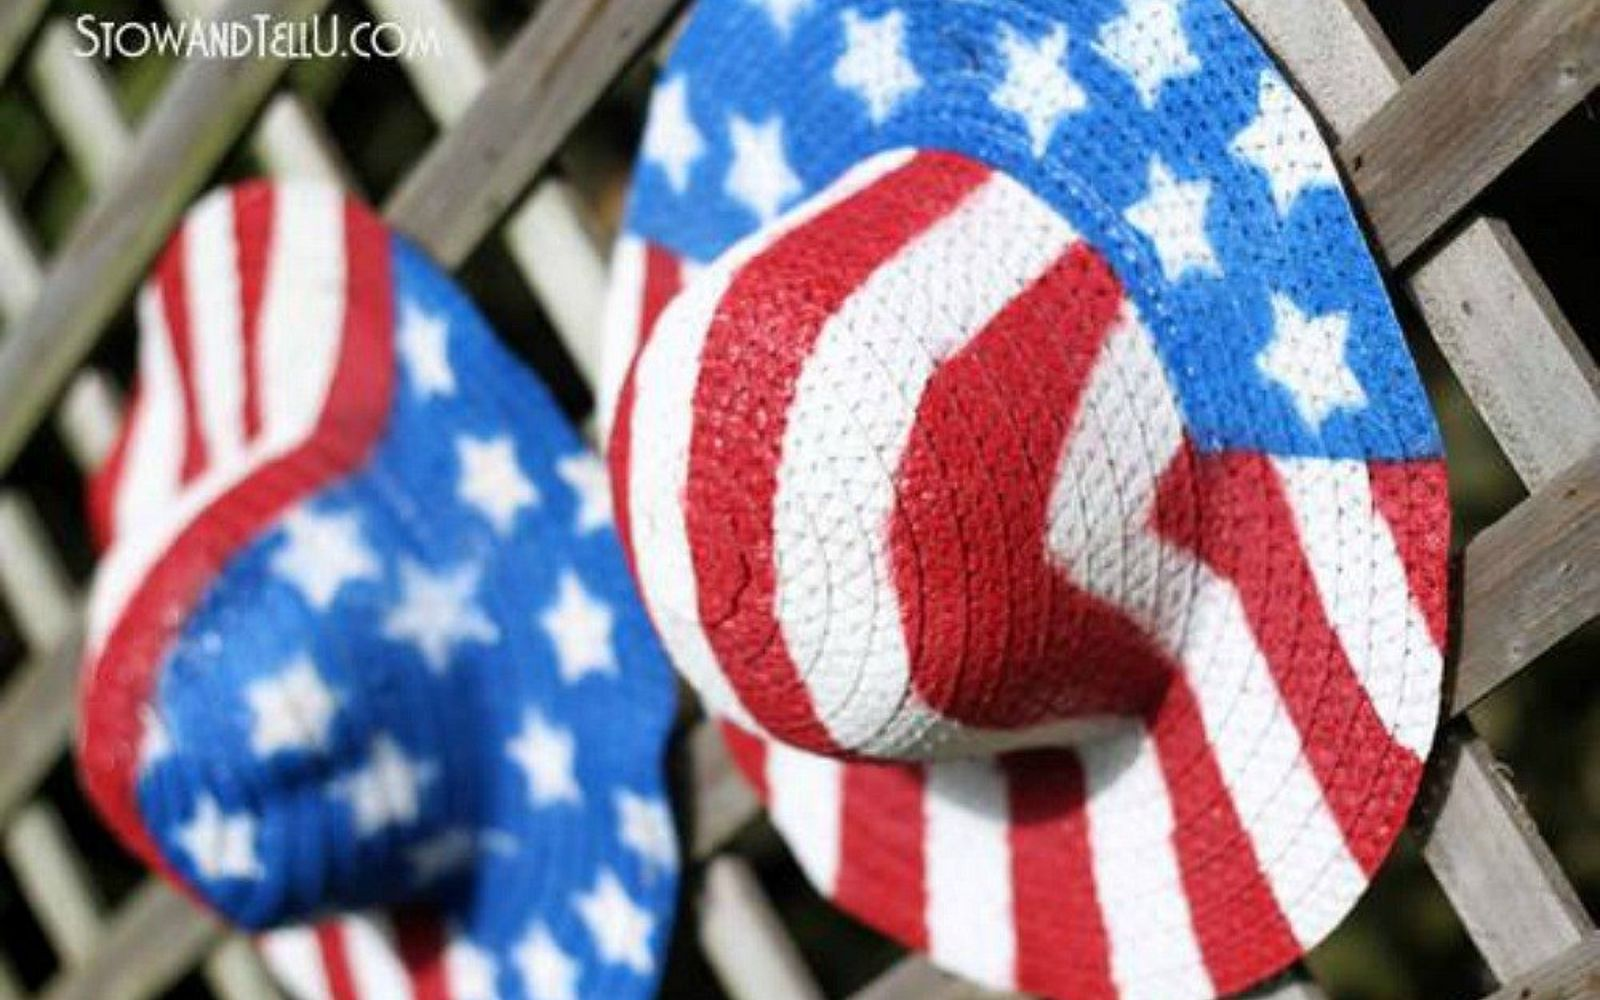 s 13 july 4th decorations that will blow your bbq guests away, crafts, outdoor living, seasonal holiday decor, Cover the fence with starred and striped hats